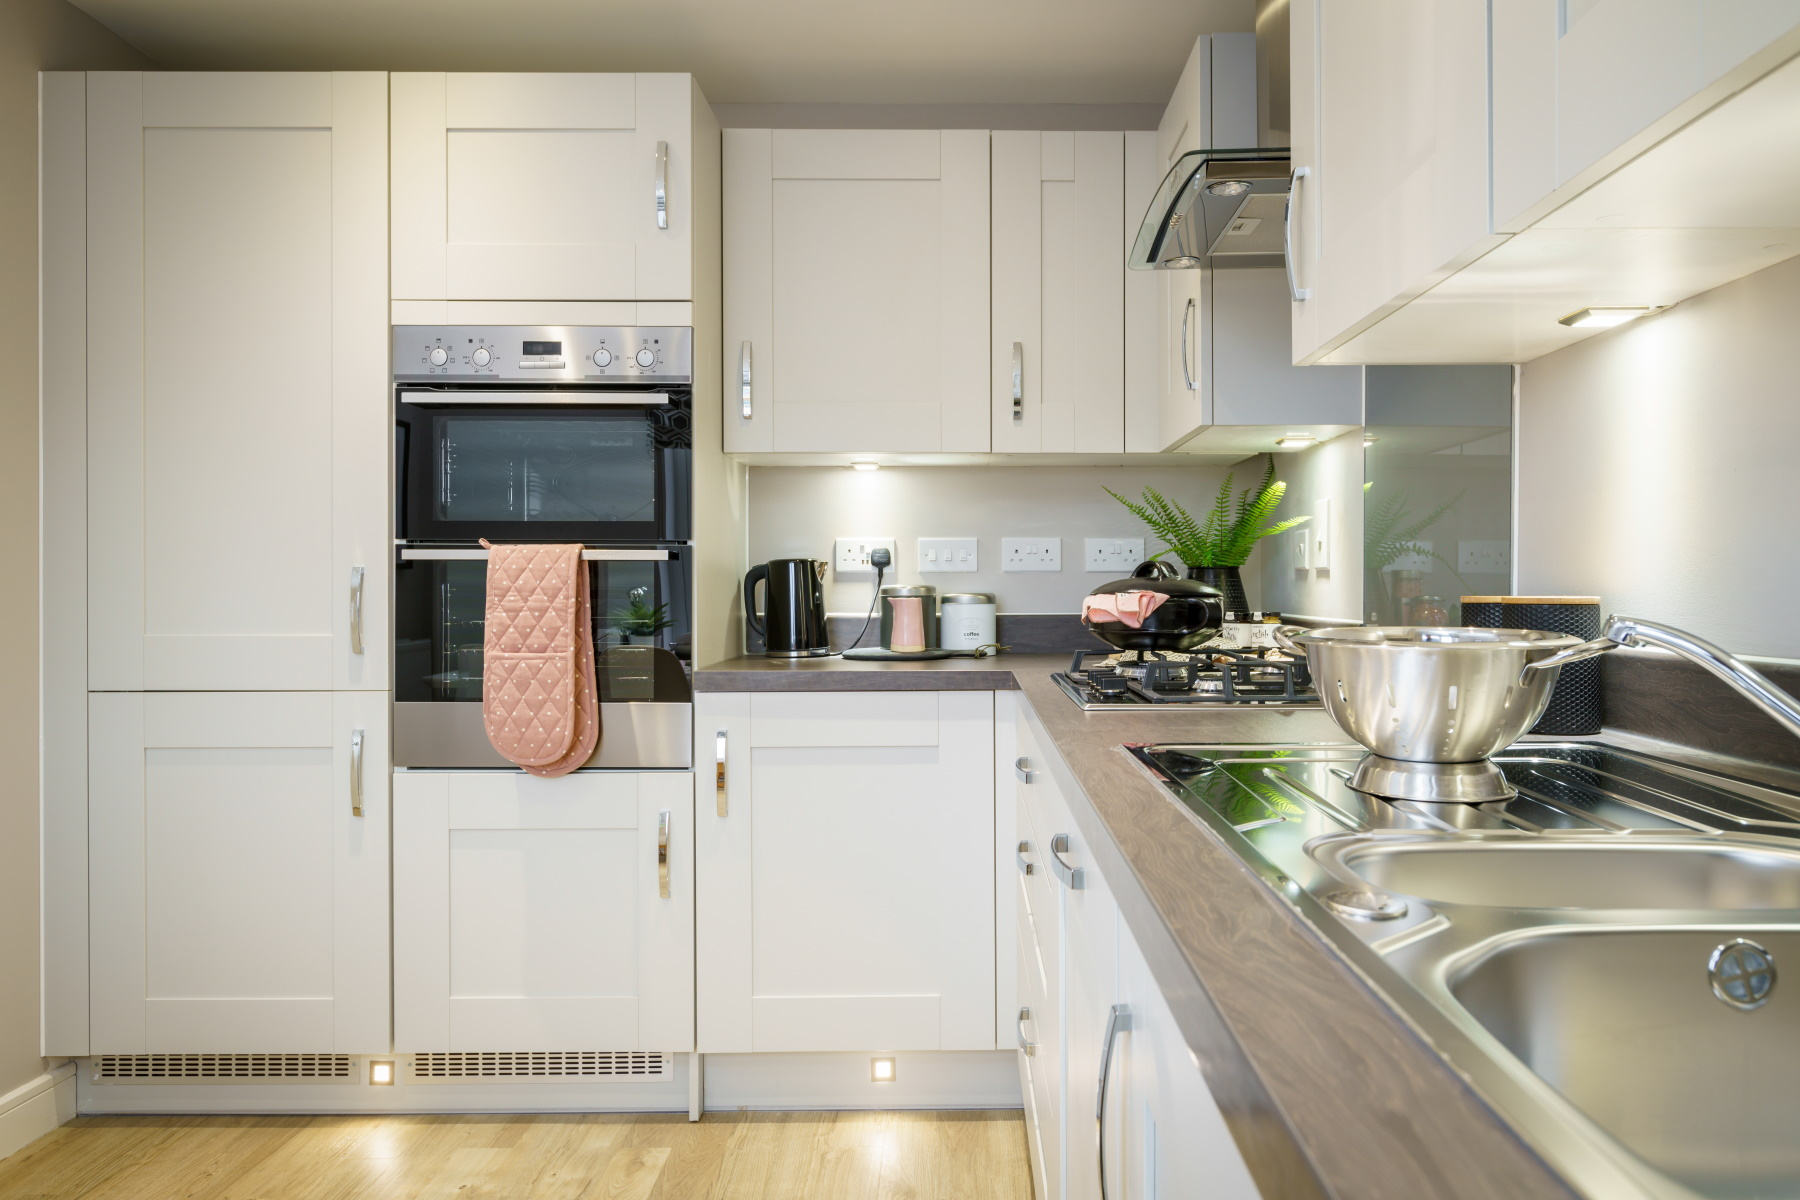 TW Exeter - Sherford - Laurel example kitchen 2